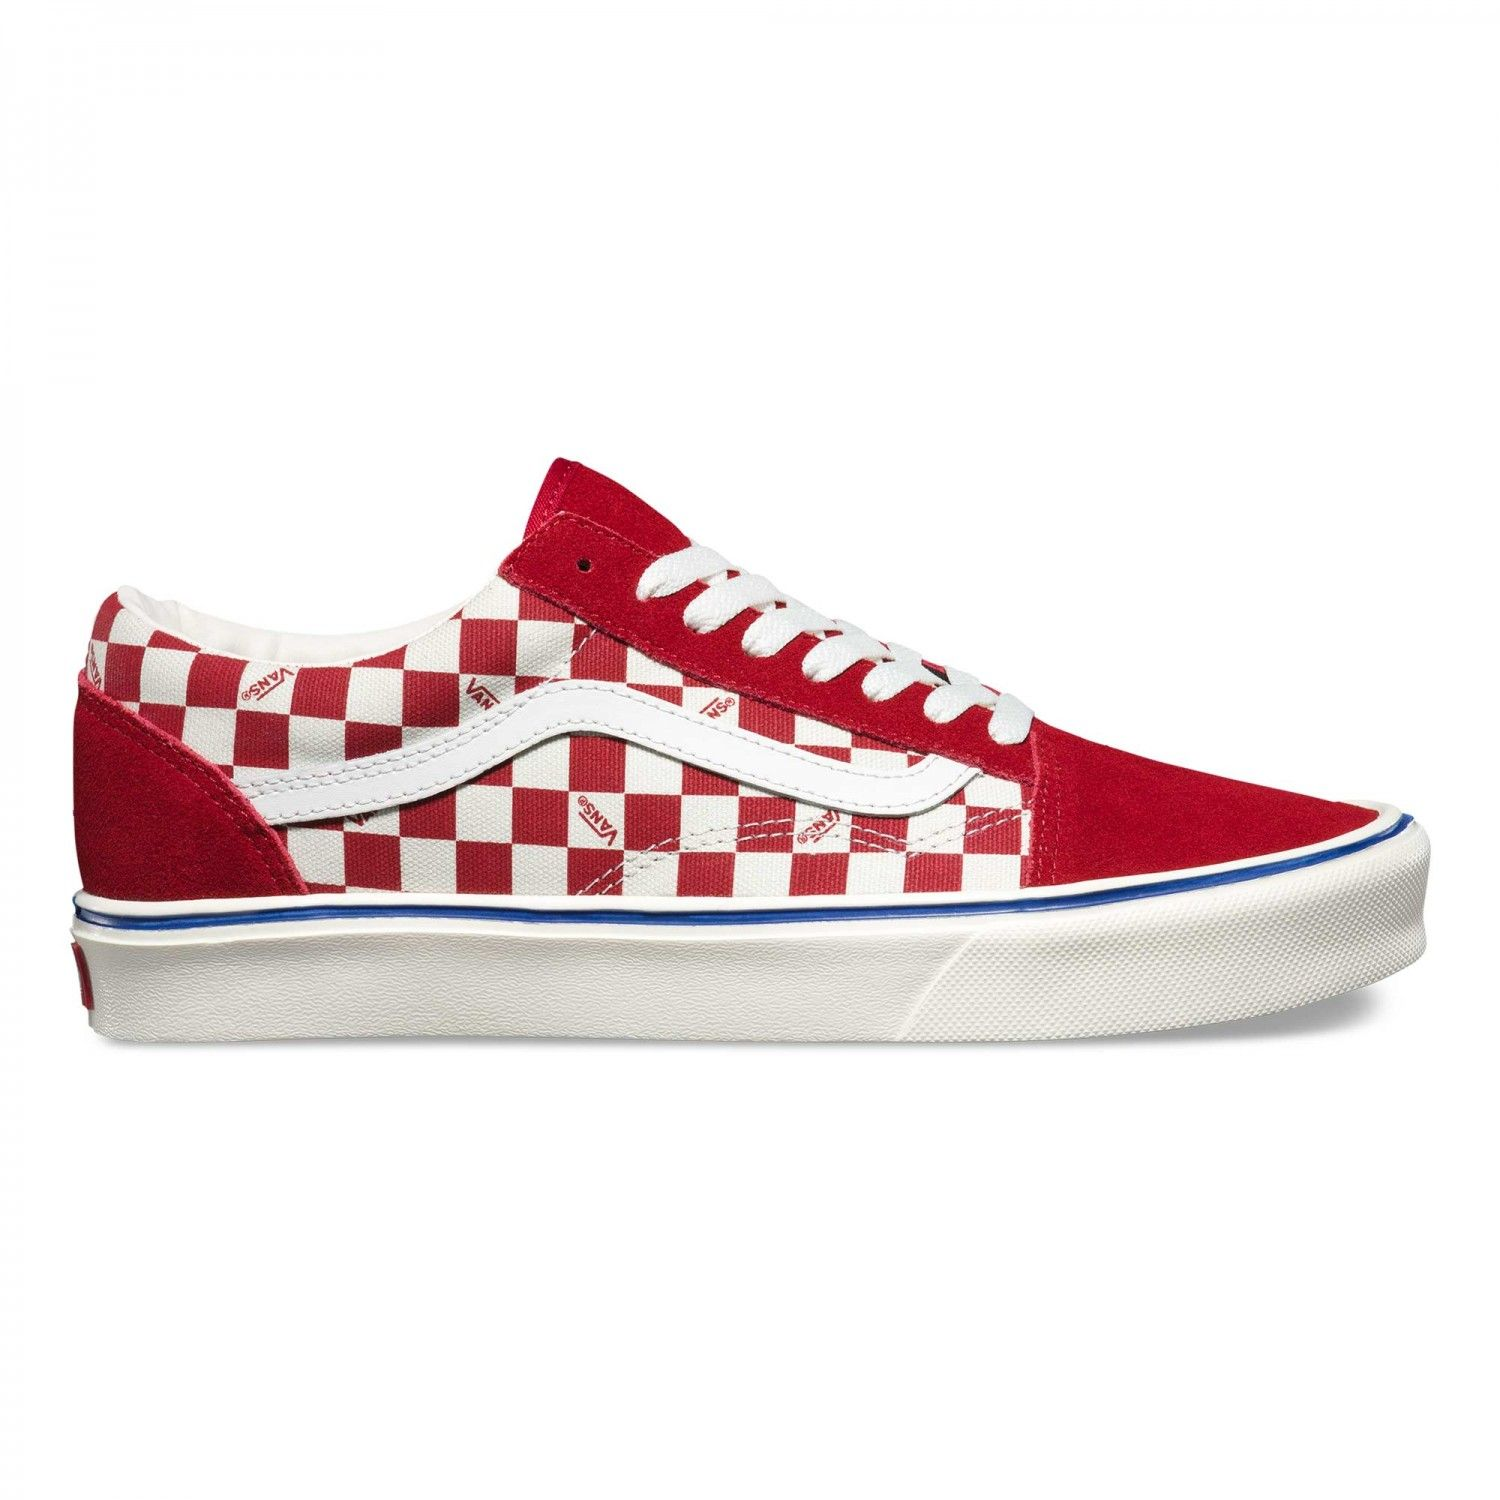 Vans Vans Seeing Checkers Old Skool Lite Shoes Seeing Checkers Chili Marshmallow Official Online Stor Mens Red Shoes Leather Shoes Men Sneakers Men Fashion